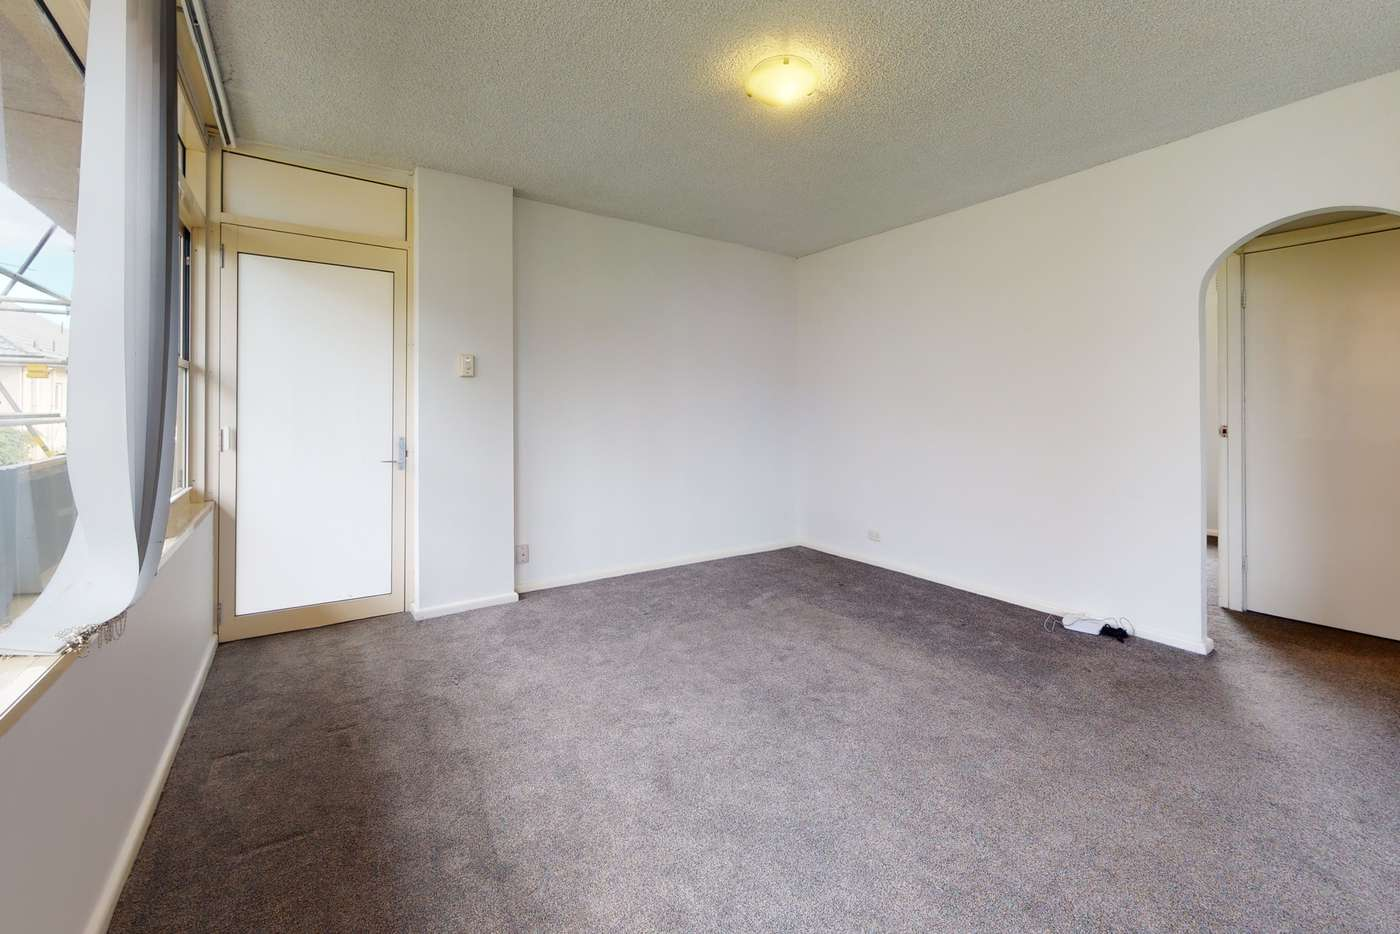 Main view of Homely apartment listing, 102/79 Mitchell Road, Cronulla NSW 2230